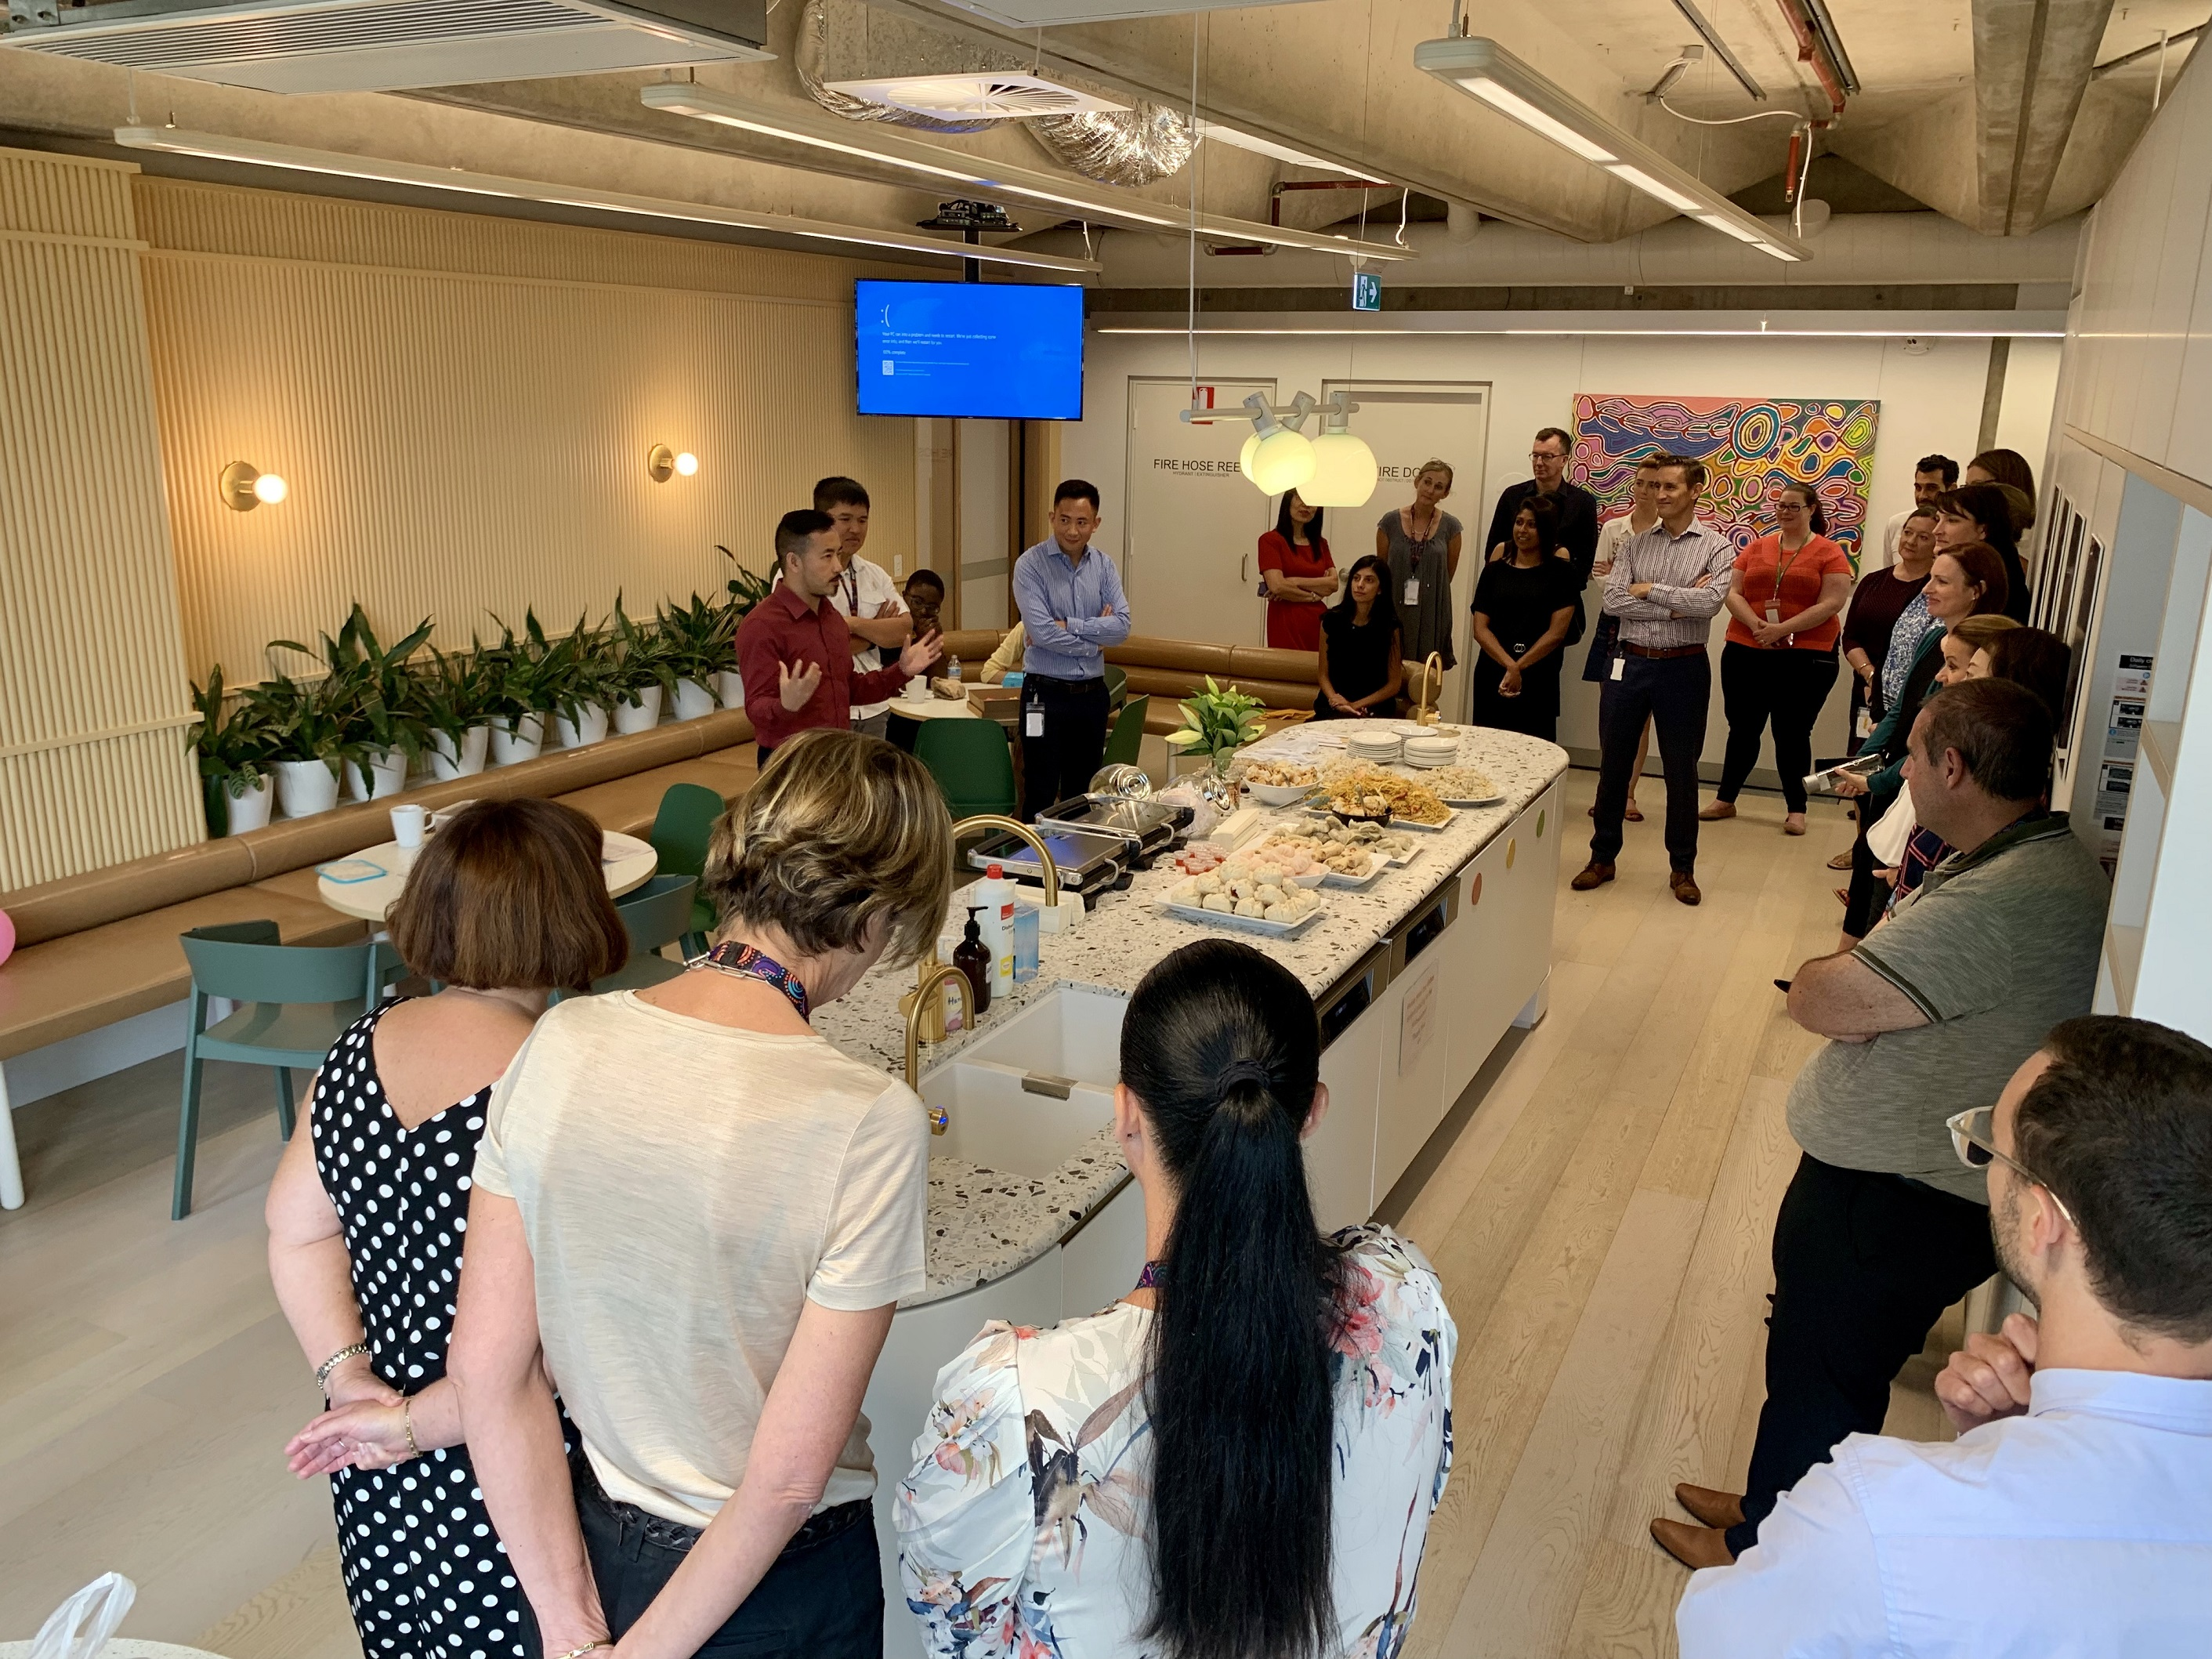 employees standing in the kitchen for a culture presentation